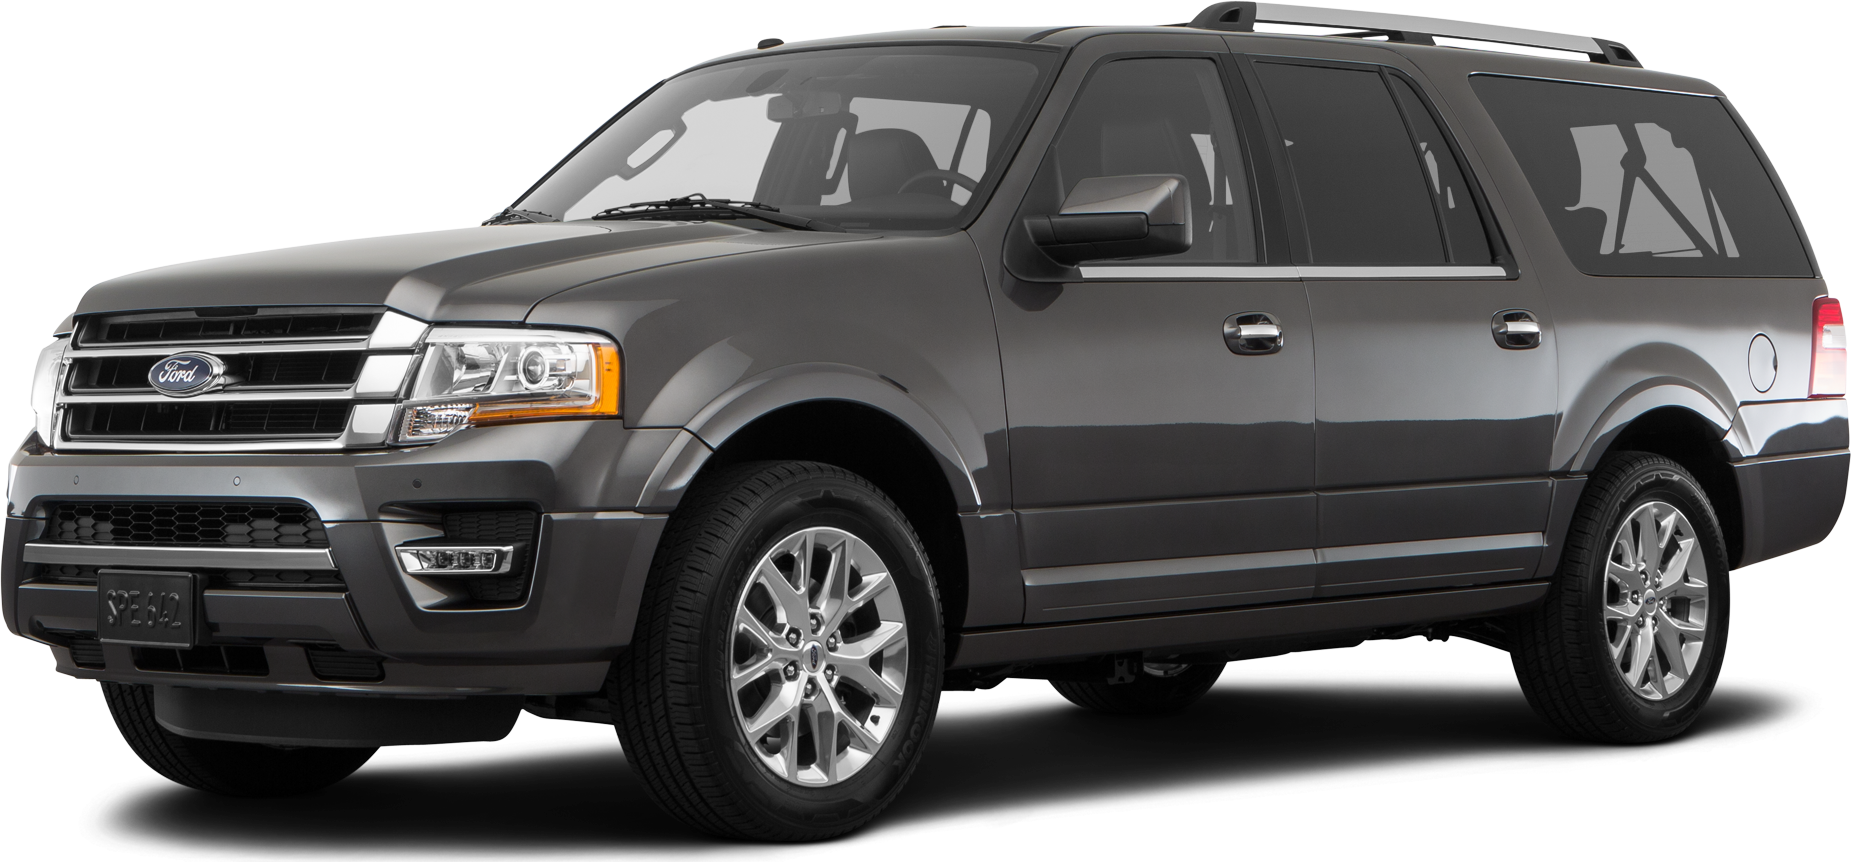 2017 Ford Expedition Pricing Ratings Expert Review Kelley Blue